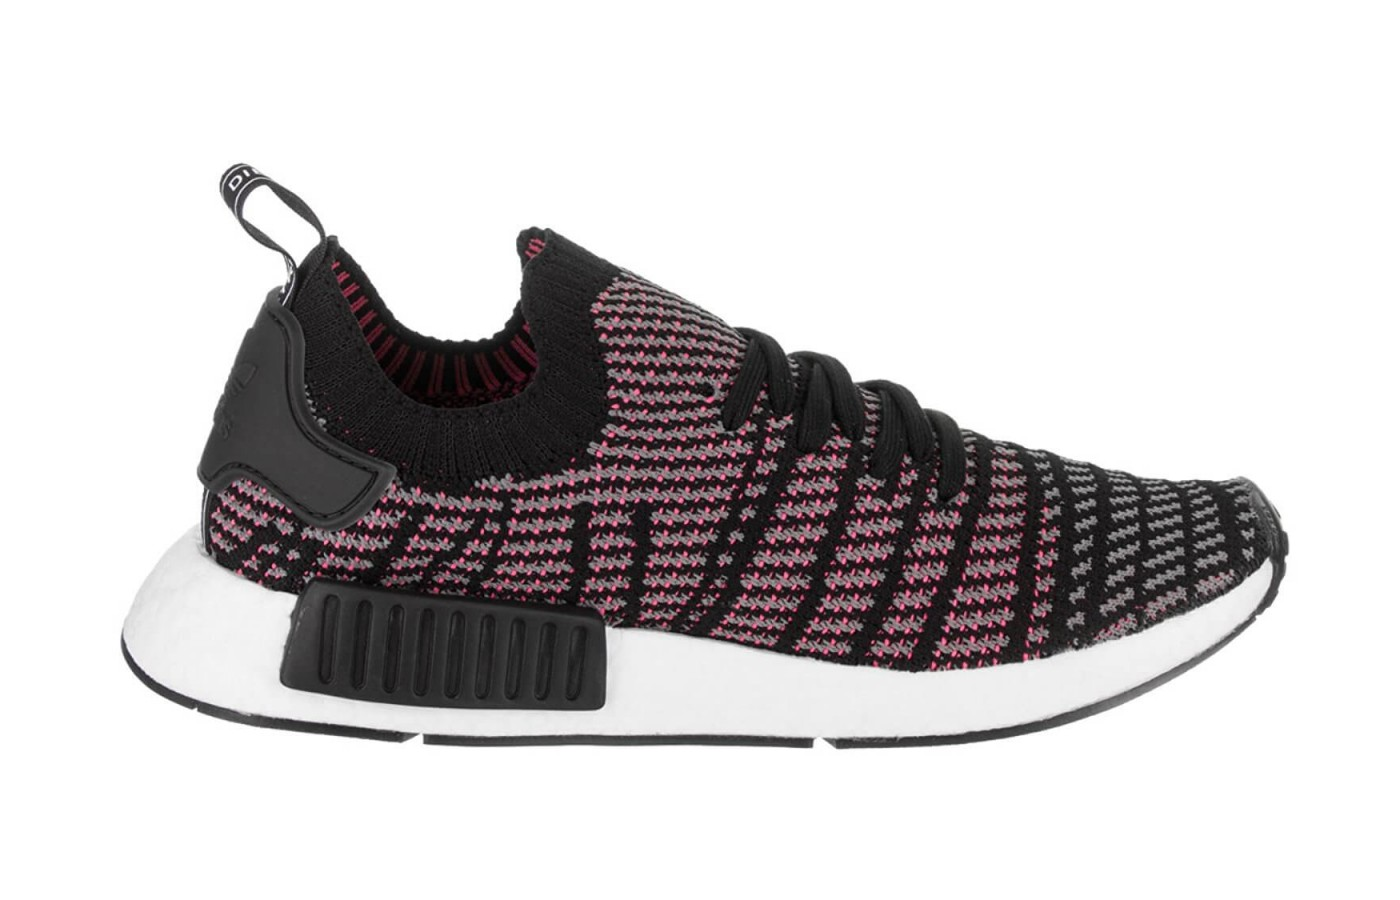 The Adidas NMD R1 Stlt Primeknit features a Boost midsole